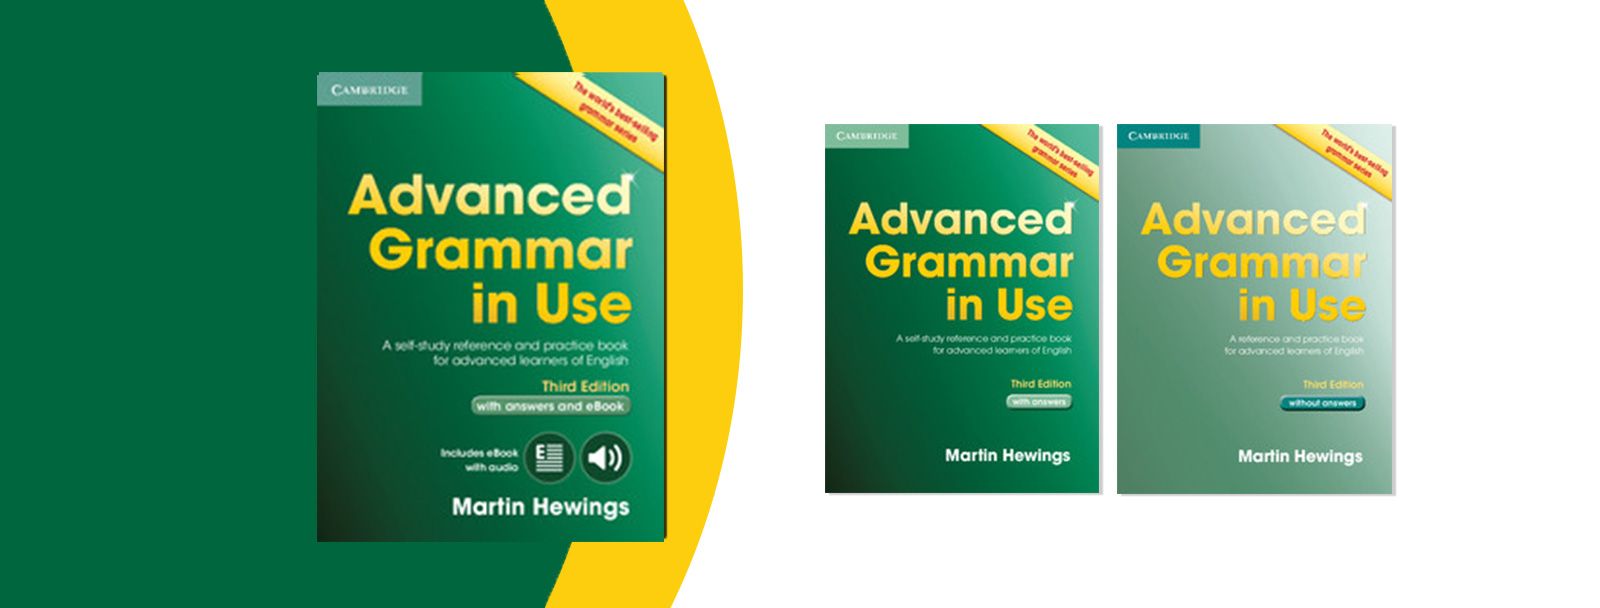 Descargar Libro English Grammar In Use Advanced Grammar In Use Third Edition Grammar Vocabulary And